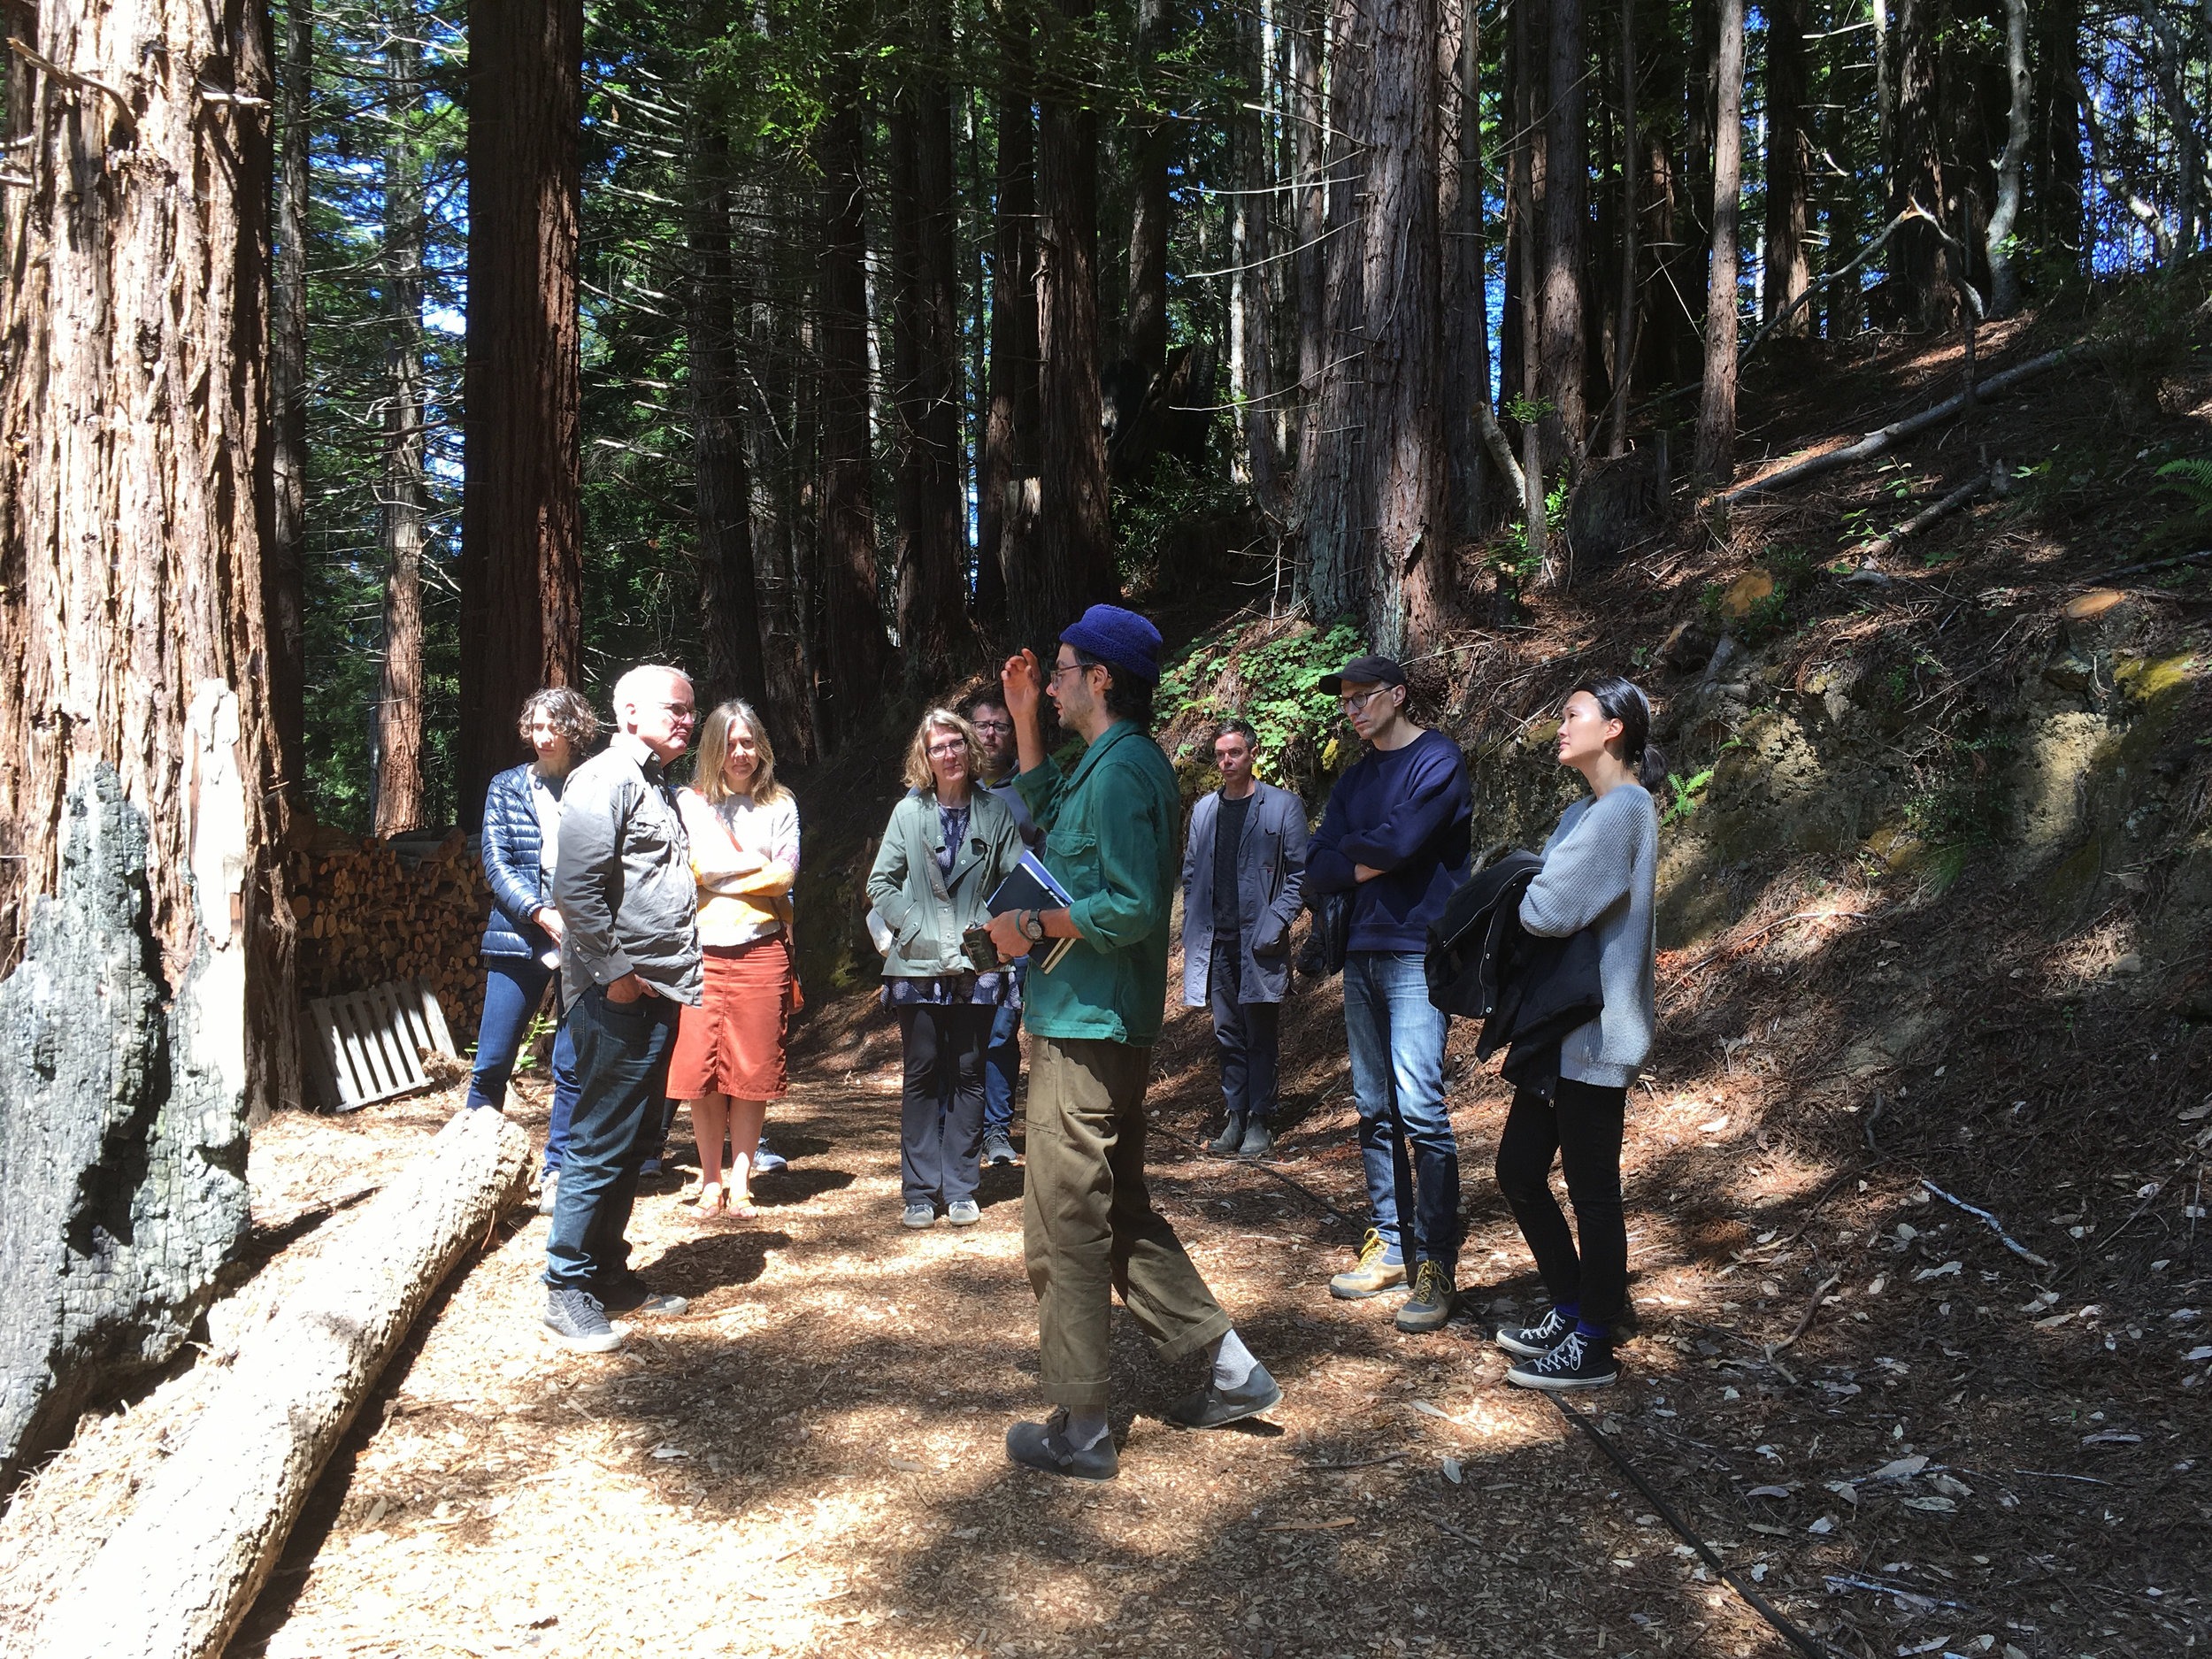 Calvin Rocchio provides a tour of grounds at Salmon Creek, visiting several cabins sited across the land, June 8, 2018.